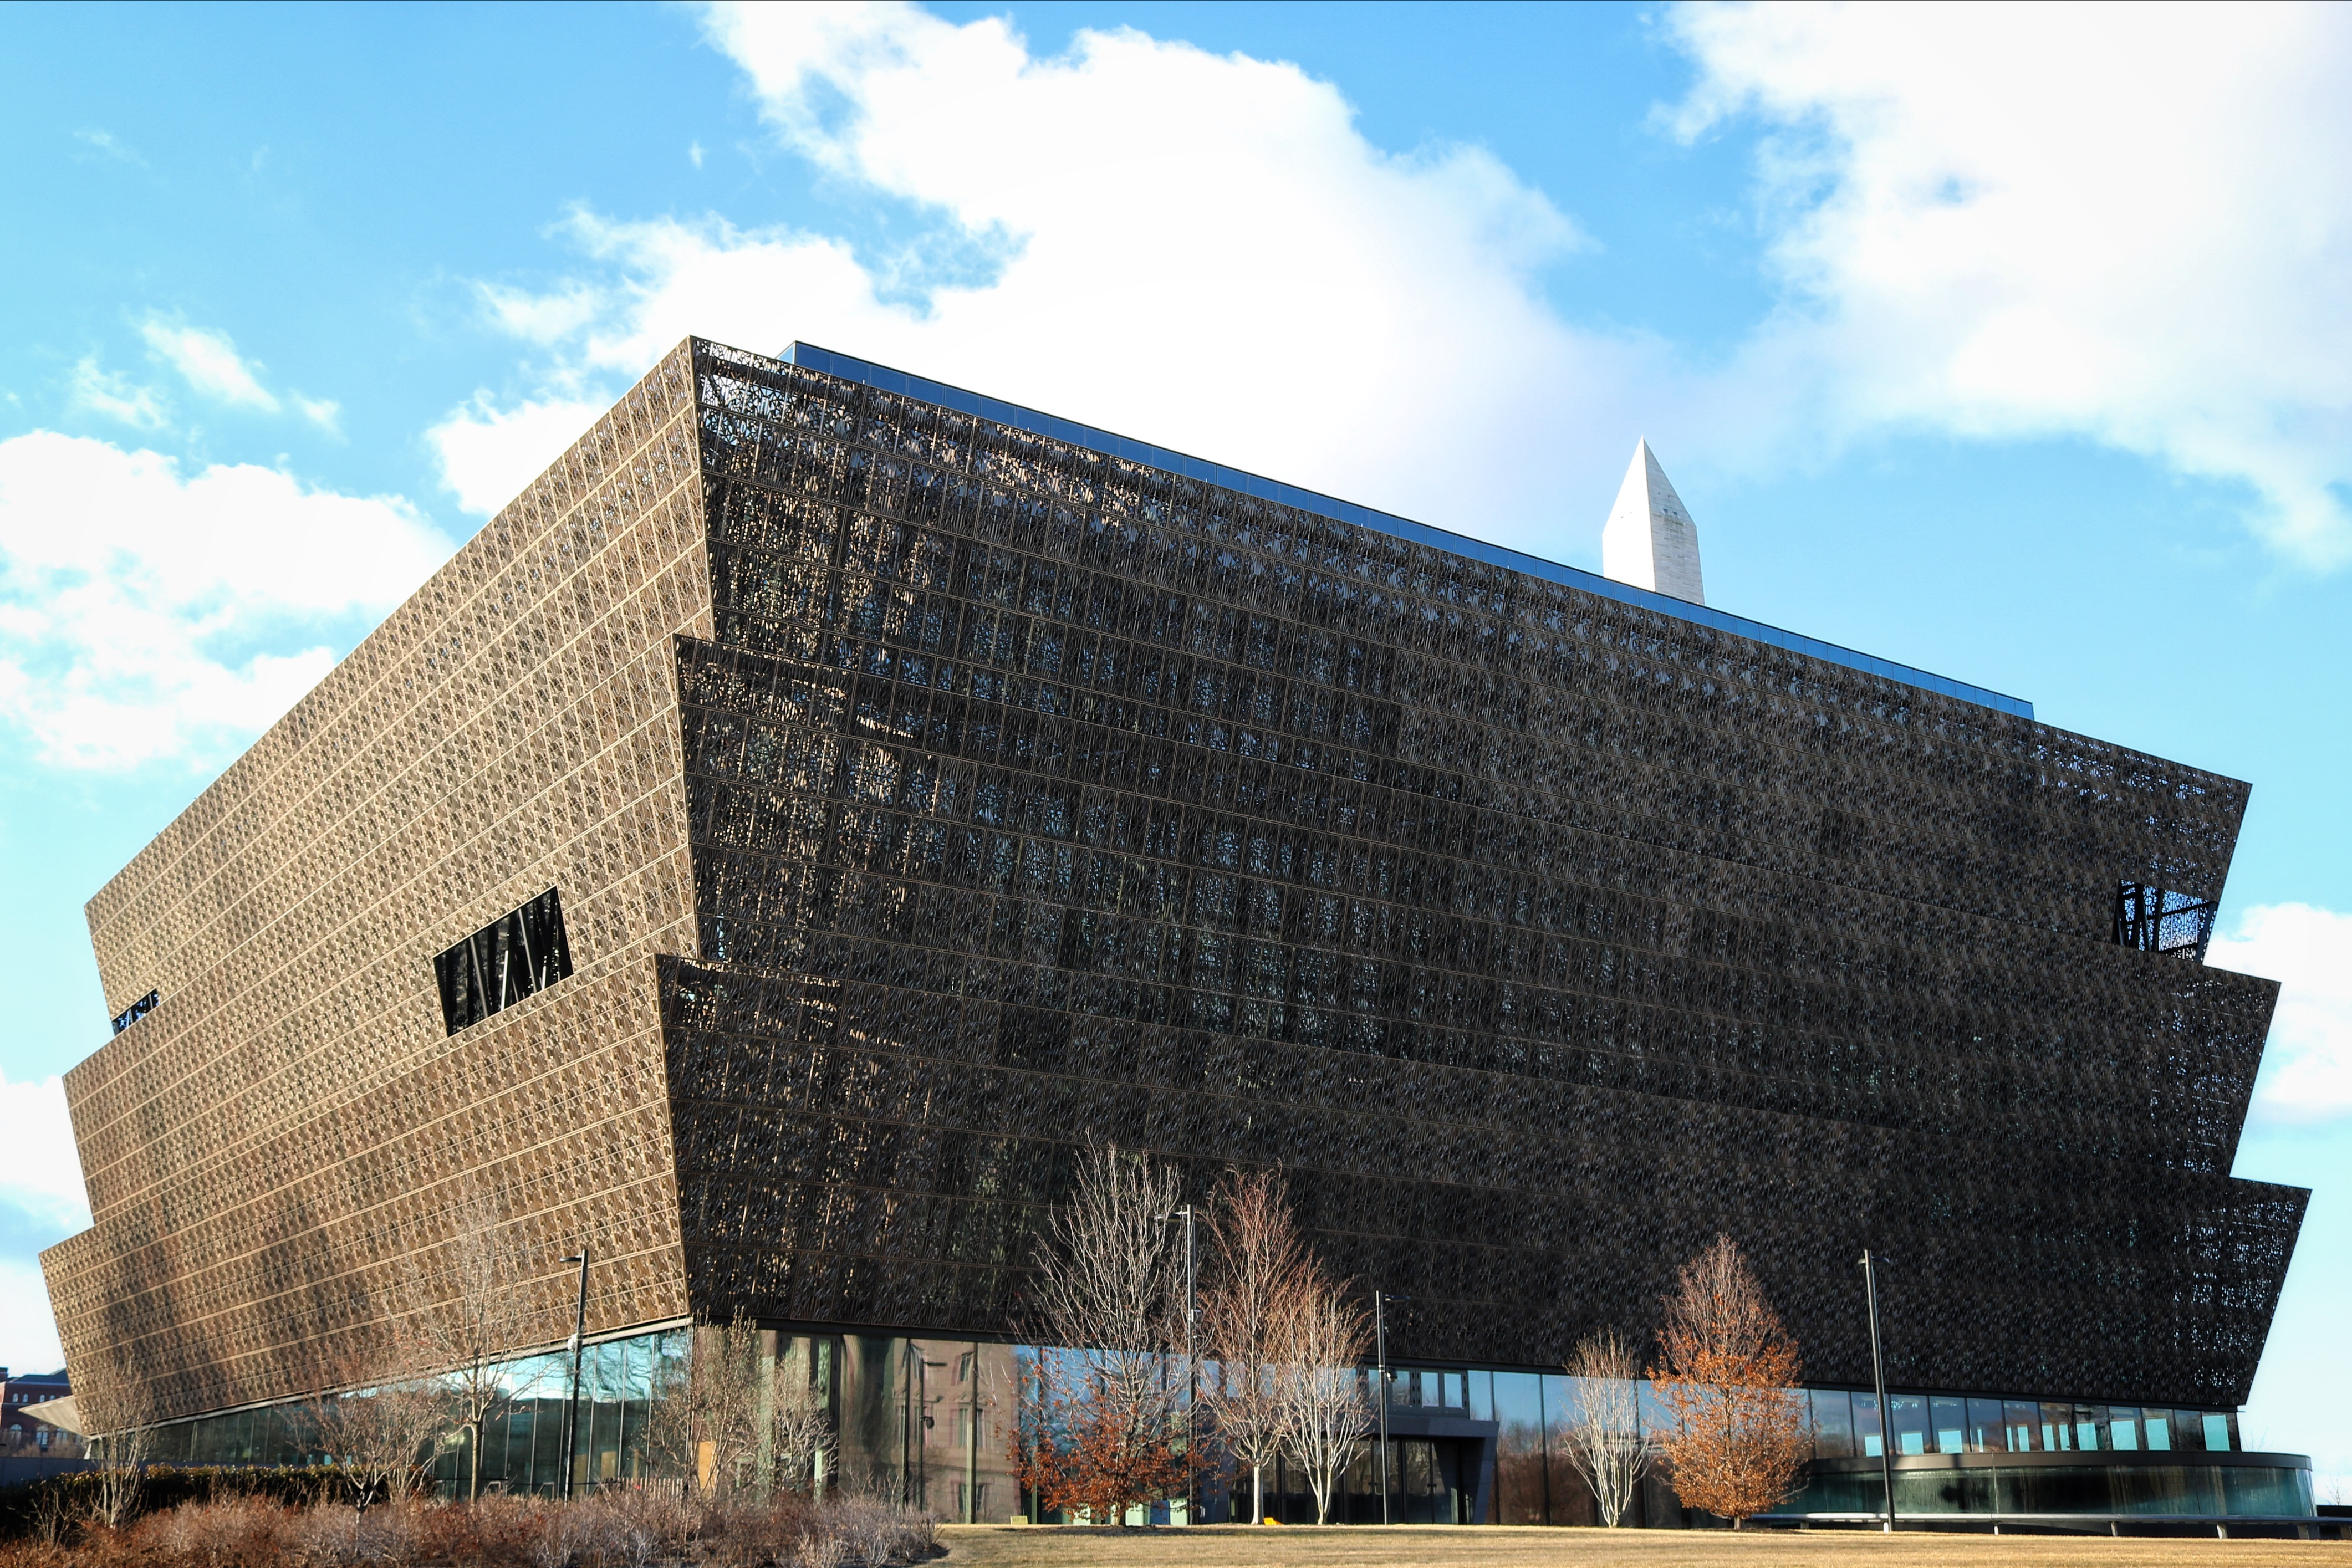 Washington, National Museum of African American History and Culture